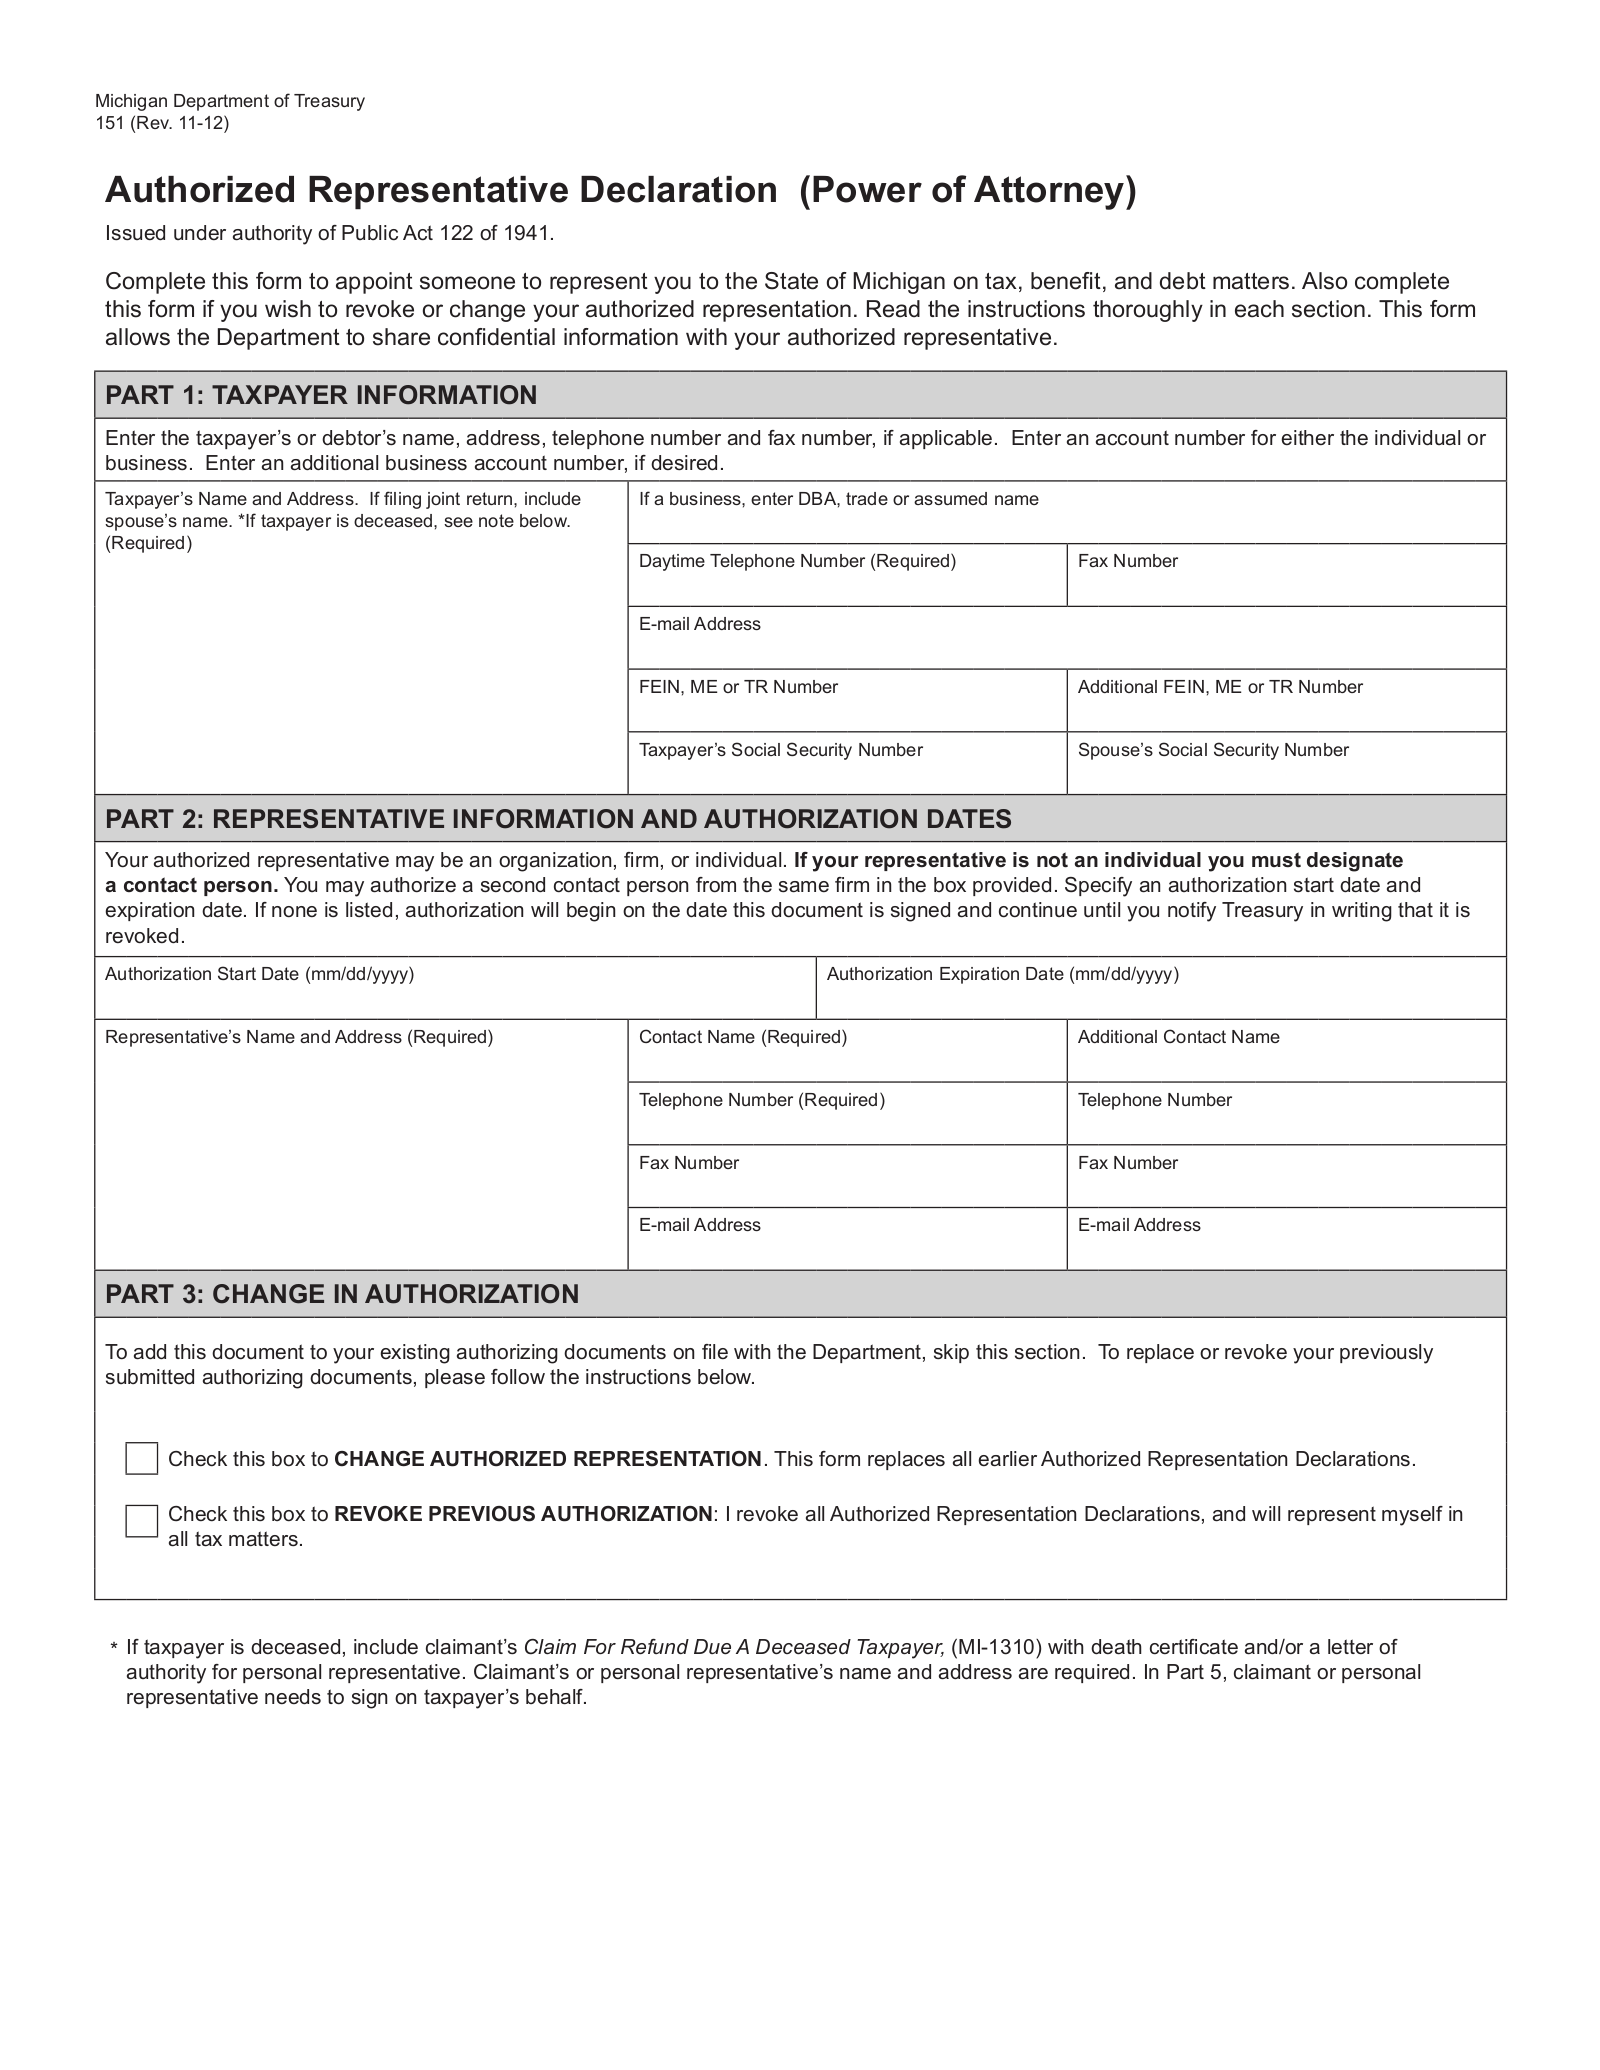 power of attorney form 151  Free Michigan Tax Power of Attorney (Form 7) - PDF ...